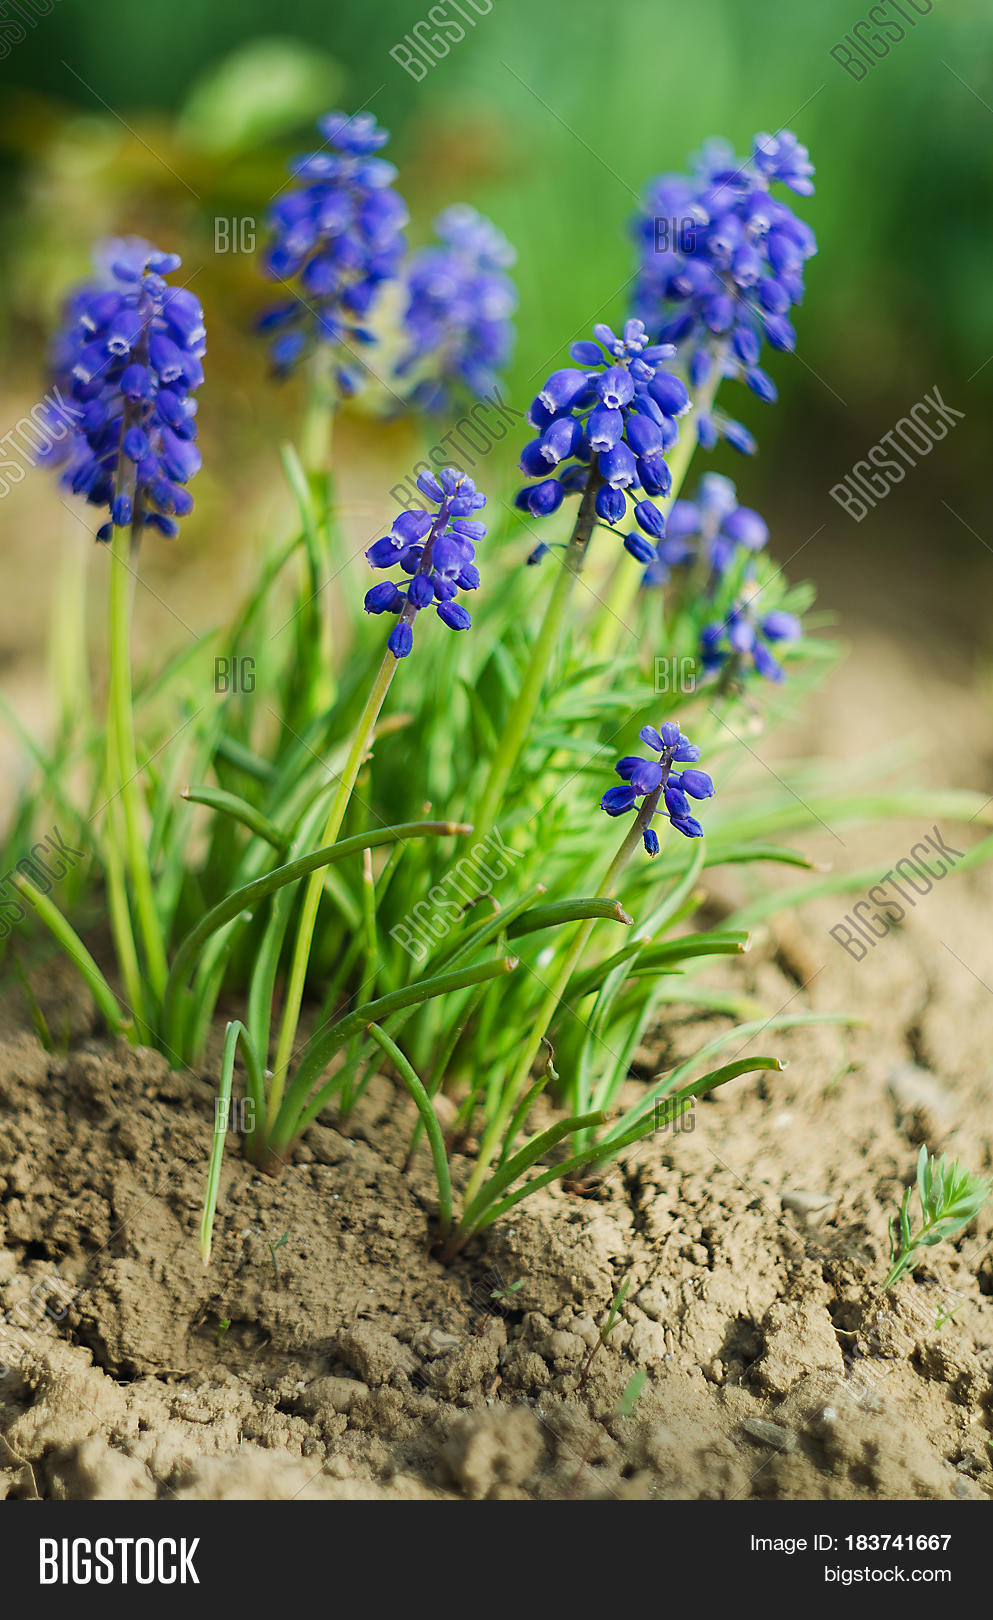 Small Blue Flowers Image Photo Free Trial Bigstock